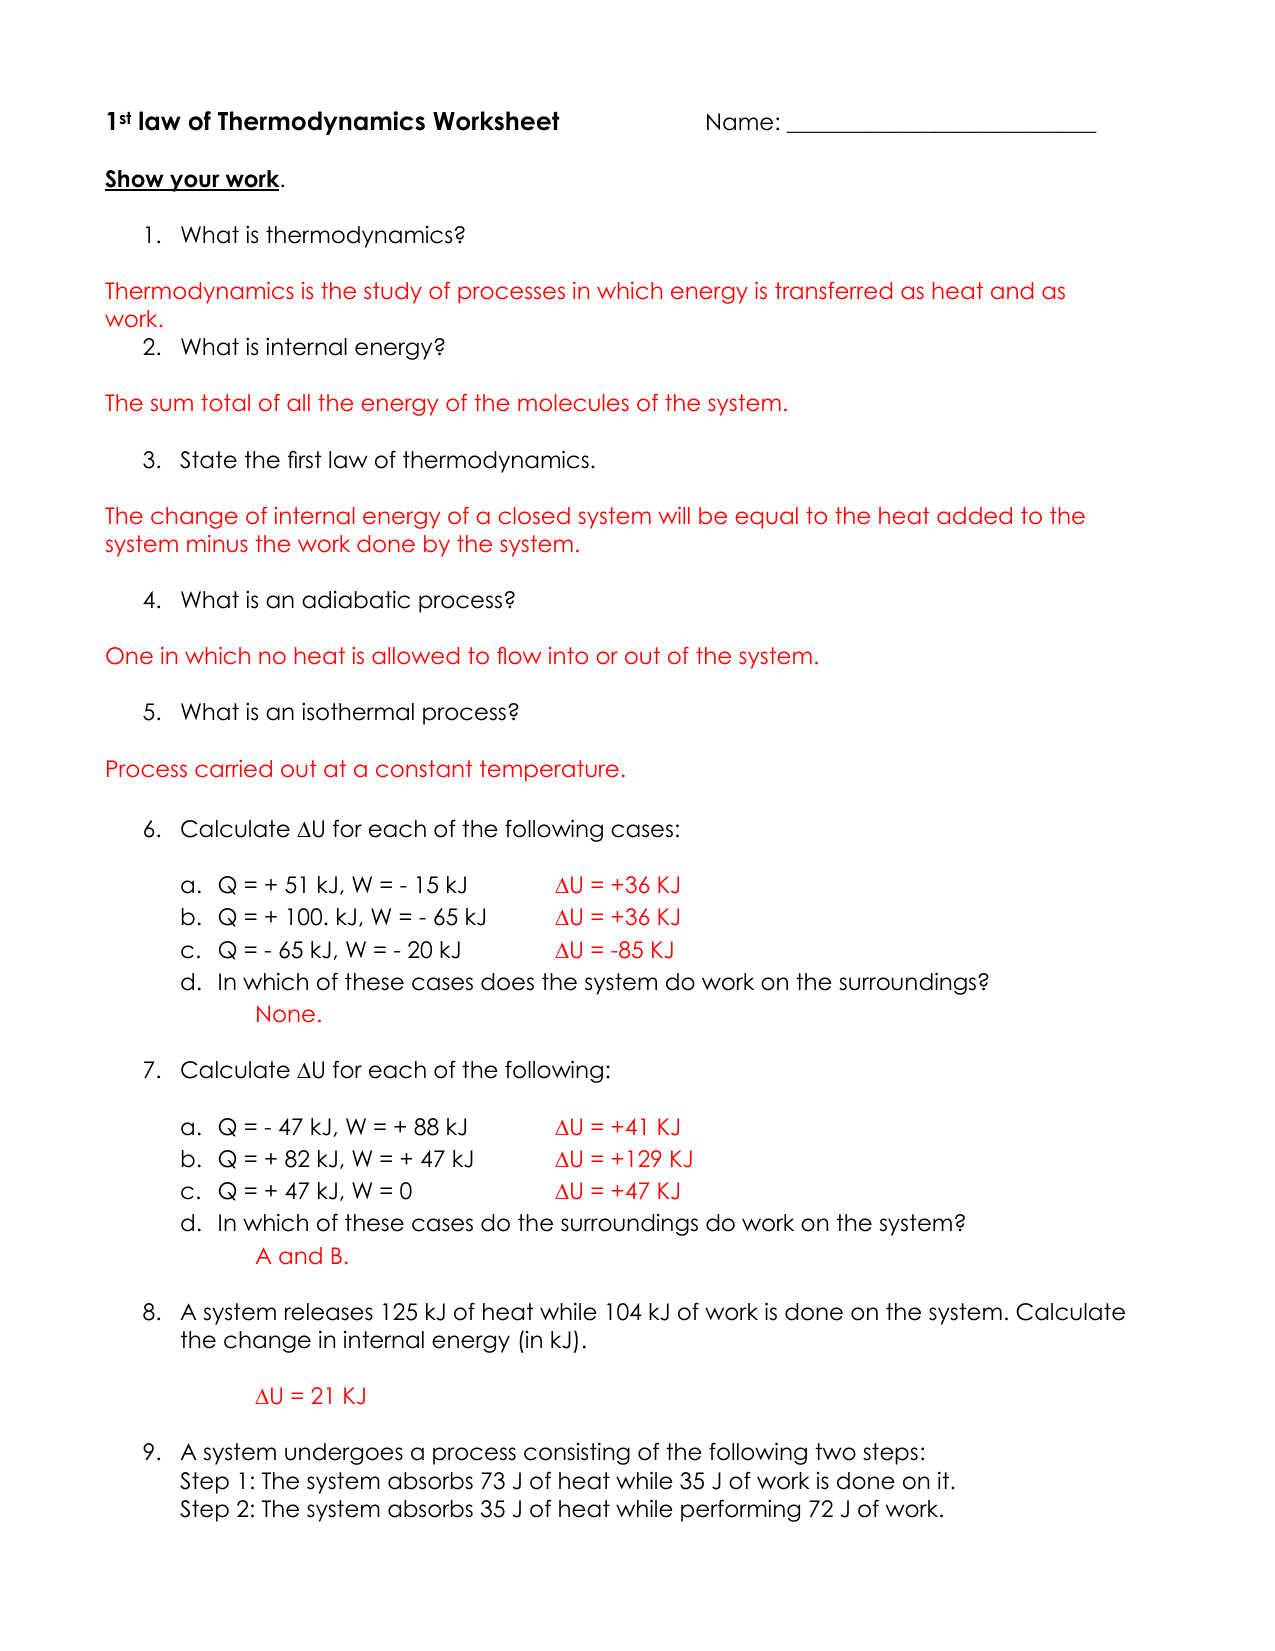 Worksheets Thermodynamics Worksheet Answers 1st law of thermodynamics worksheet 009058930 1 df476bf91df8385ff256fa5dceb294dd png